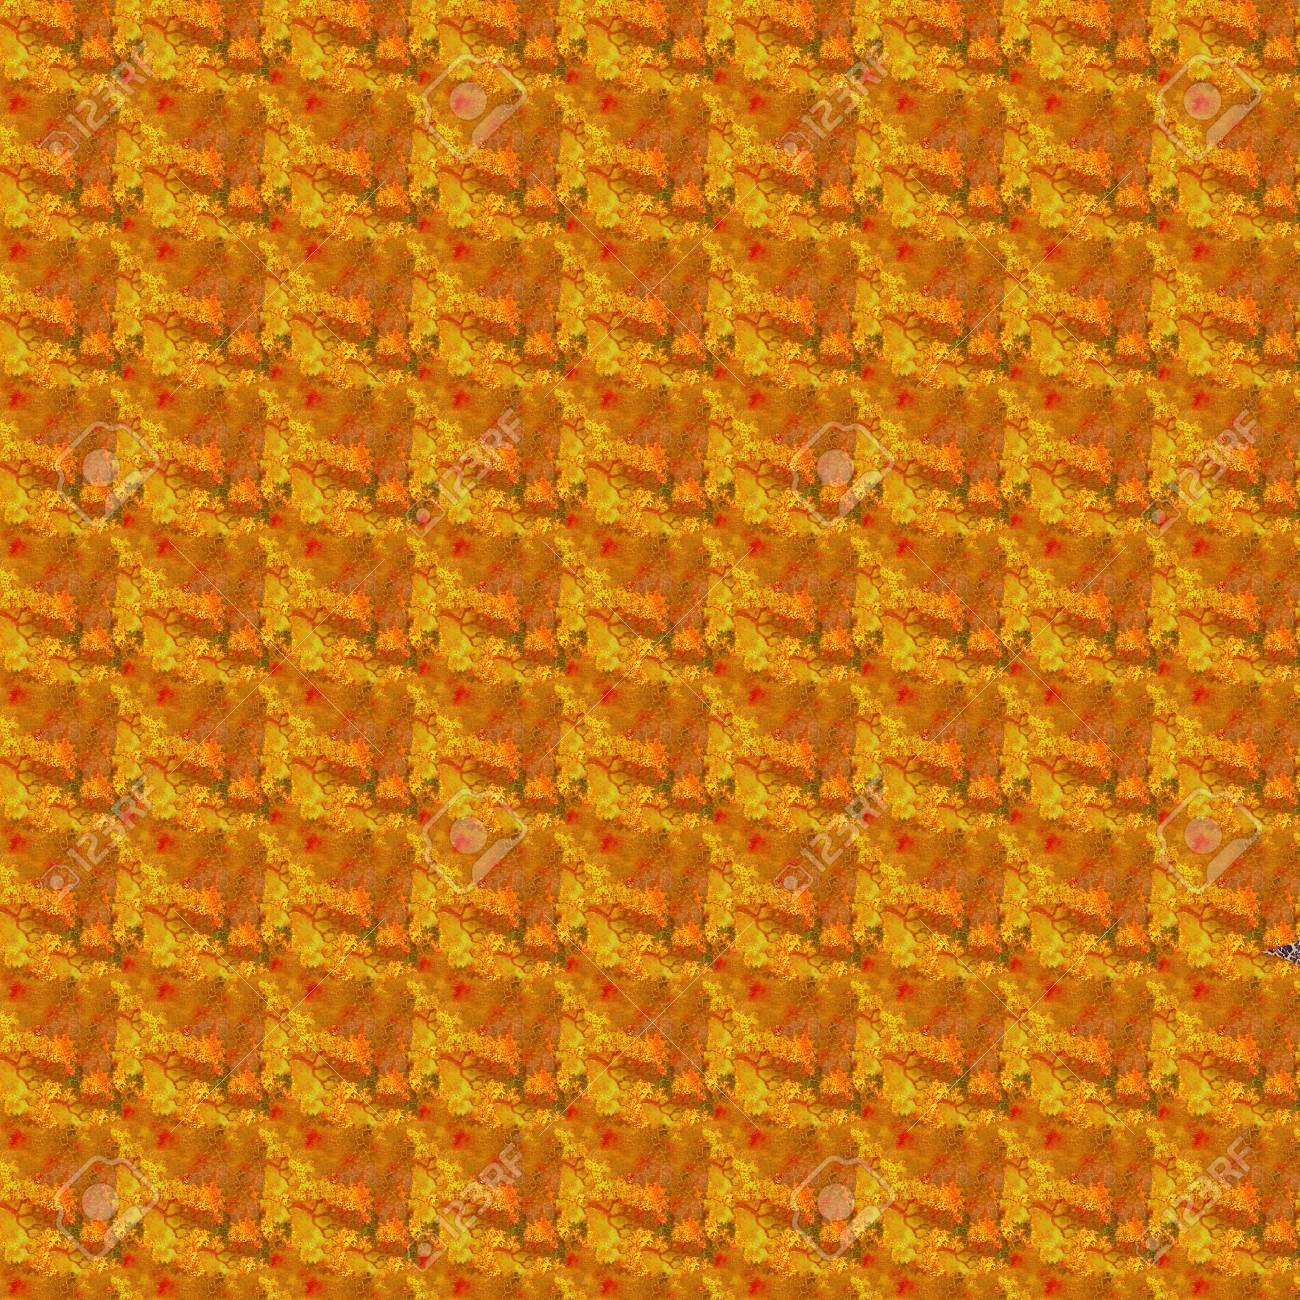 Brown and orange seamless grunge texture. For vintage layout design, holiday background invitation or web template Stock Photo - 17560236